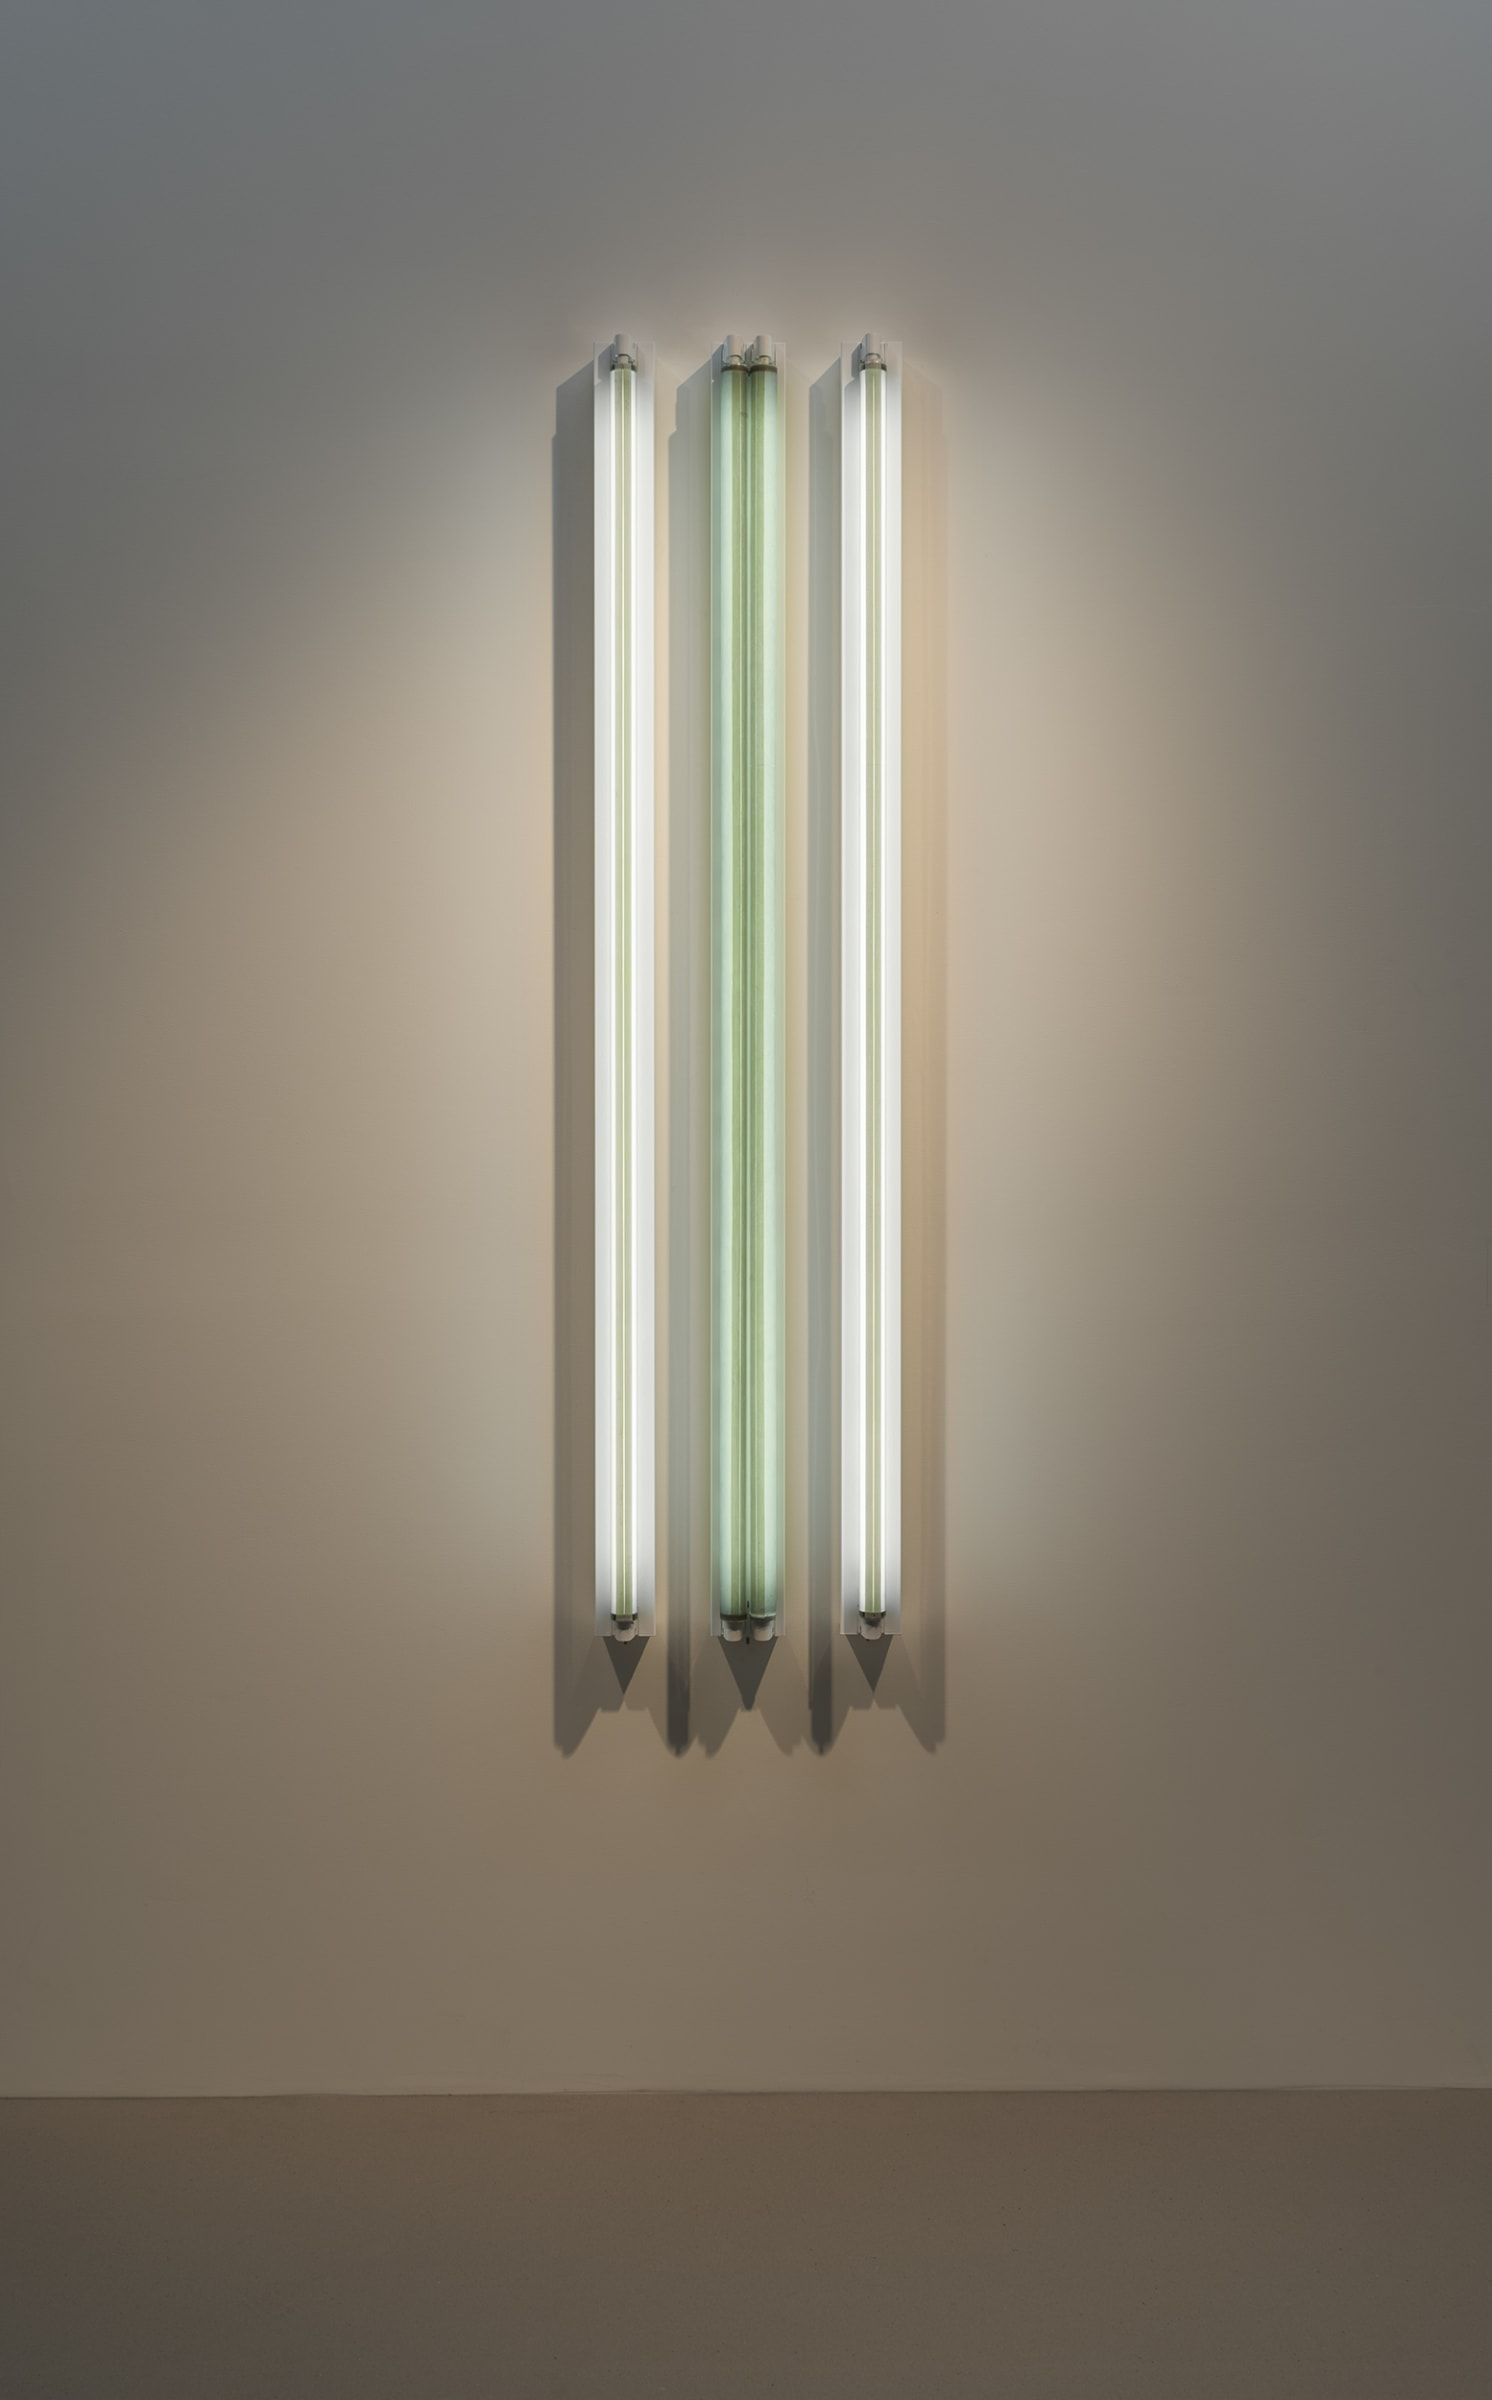 "<span class=""link fancybox-details-link""><a href=""/exhibitions/160/works/artworks14396/"">View Detail Page</a></span><div class=""artist""><strong>ROBERT IRWIN</strong></div><div class=""title""><em>#3x 6'D Four Fold</em>, 2016</div><div class=""medium"">light, shadow, reflection, color<br>Grey #2 / Jade++ -><- / Grey #2</div><div class=""dimensions"">183 x 41 x 11 cm<br>72 1/8 x 16 1/8 x 4 in</div>"